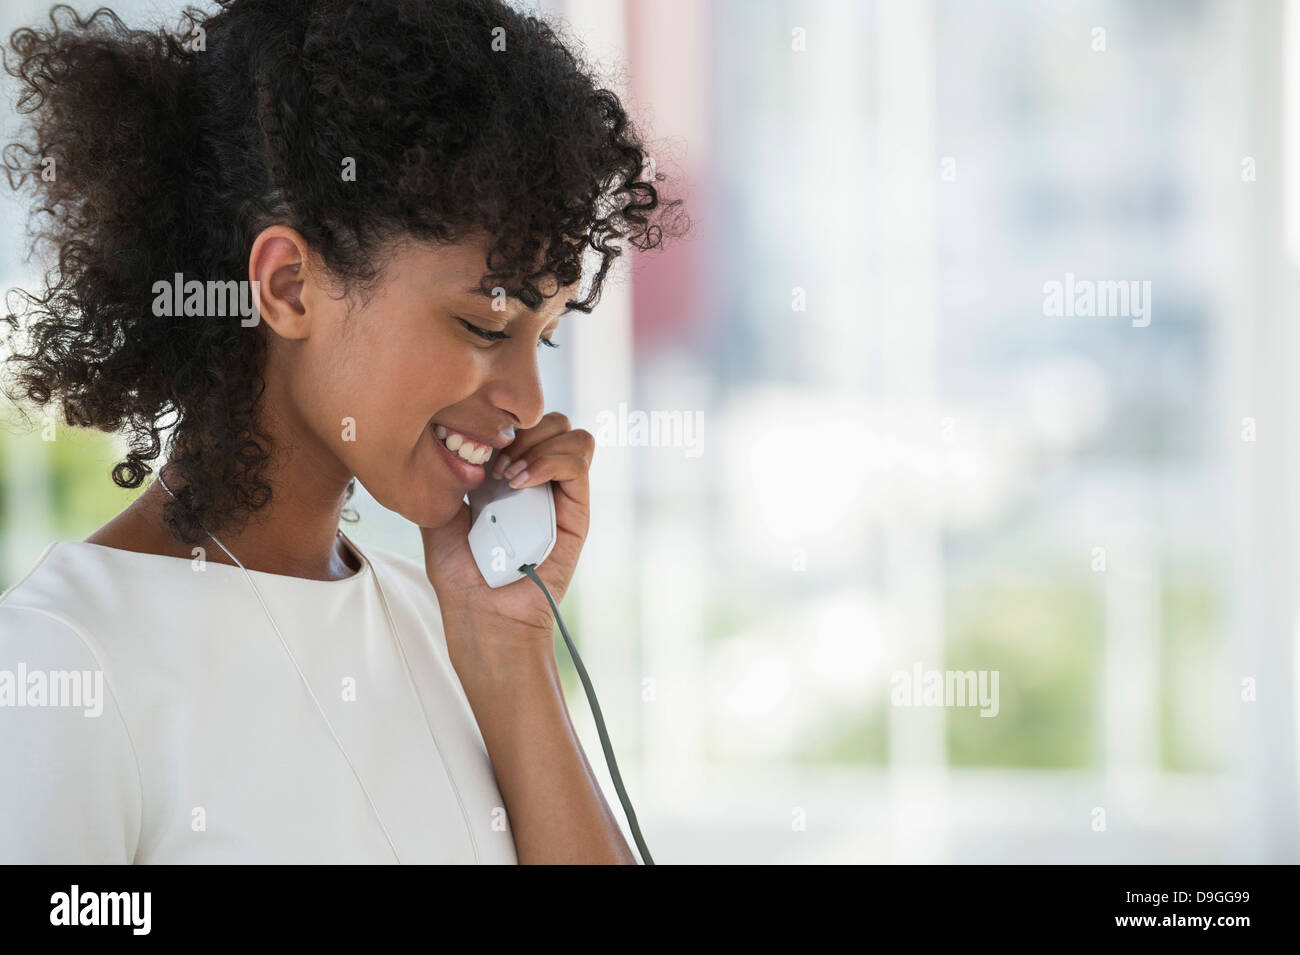 Close-up of a woman talking on a landline phone - Stock Image